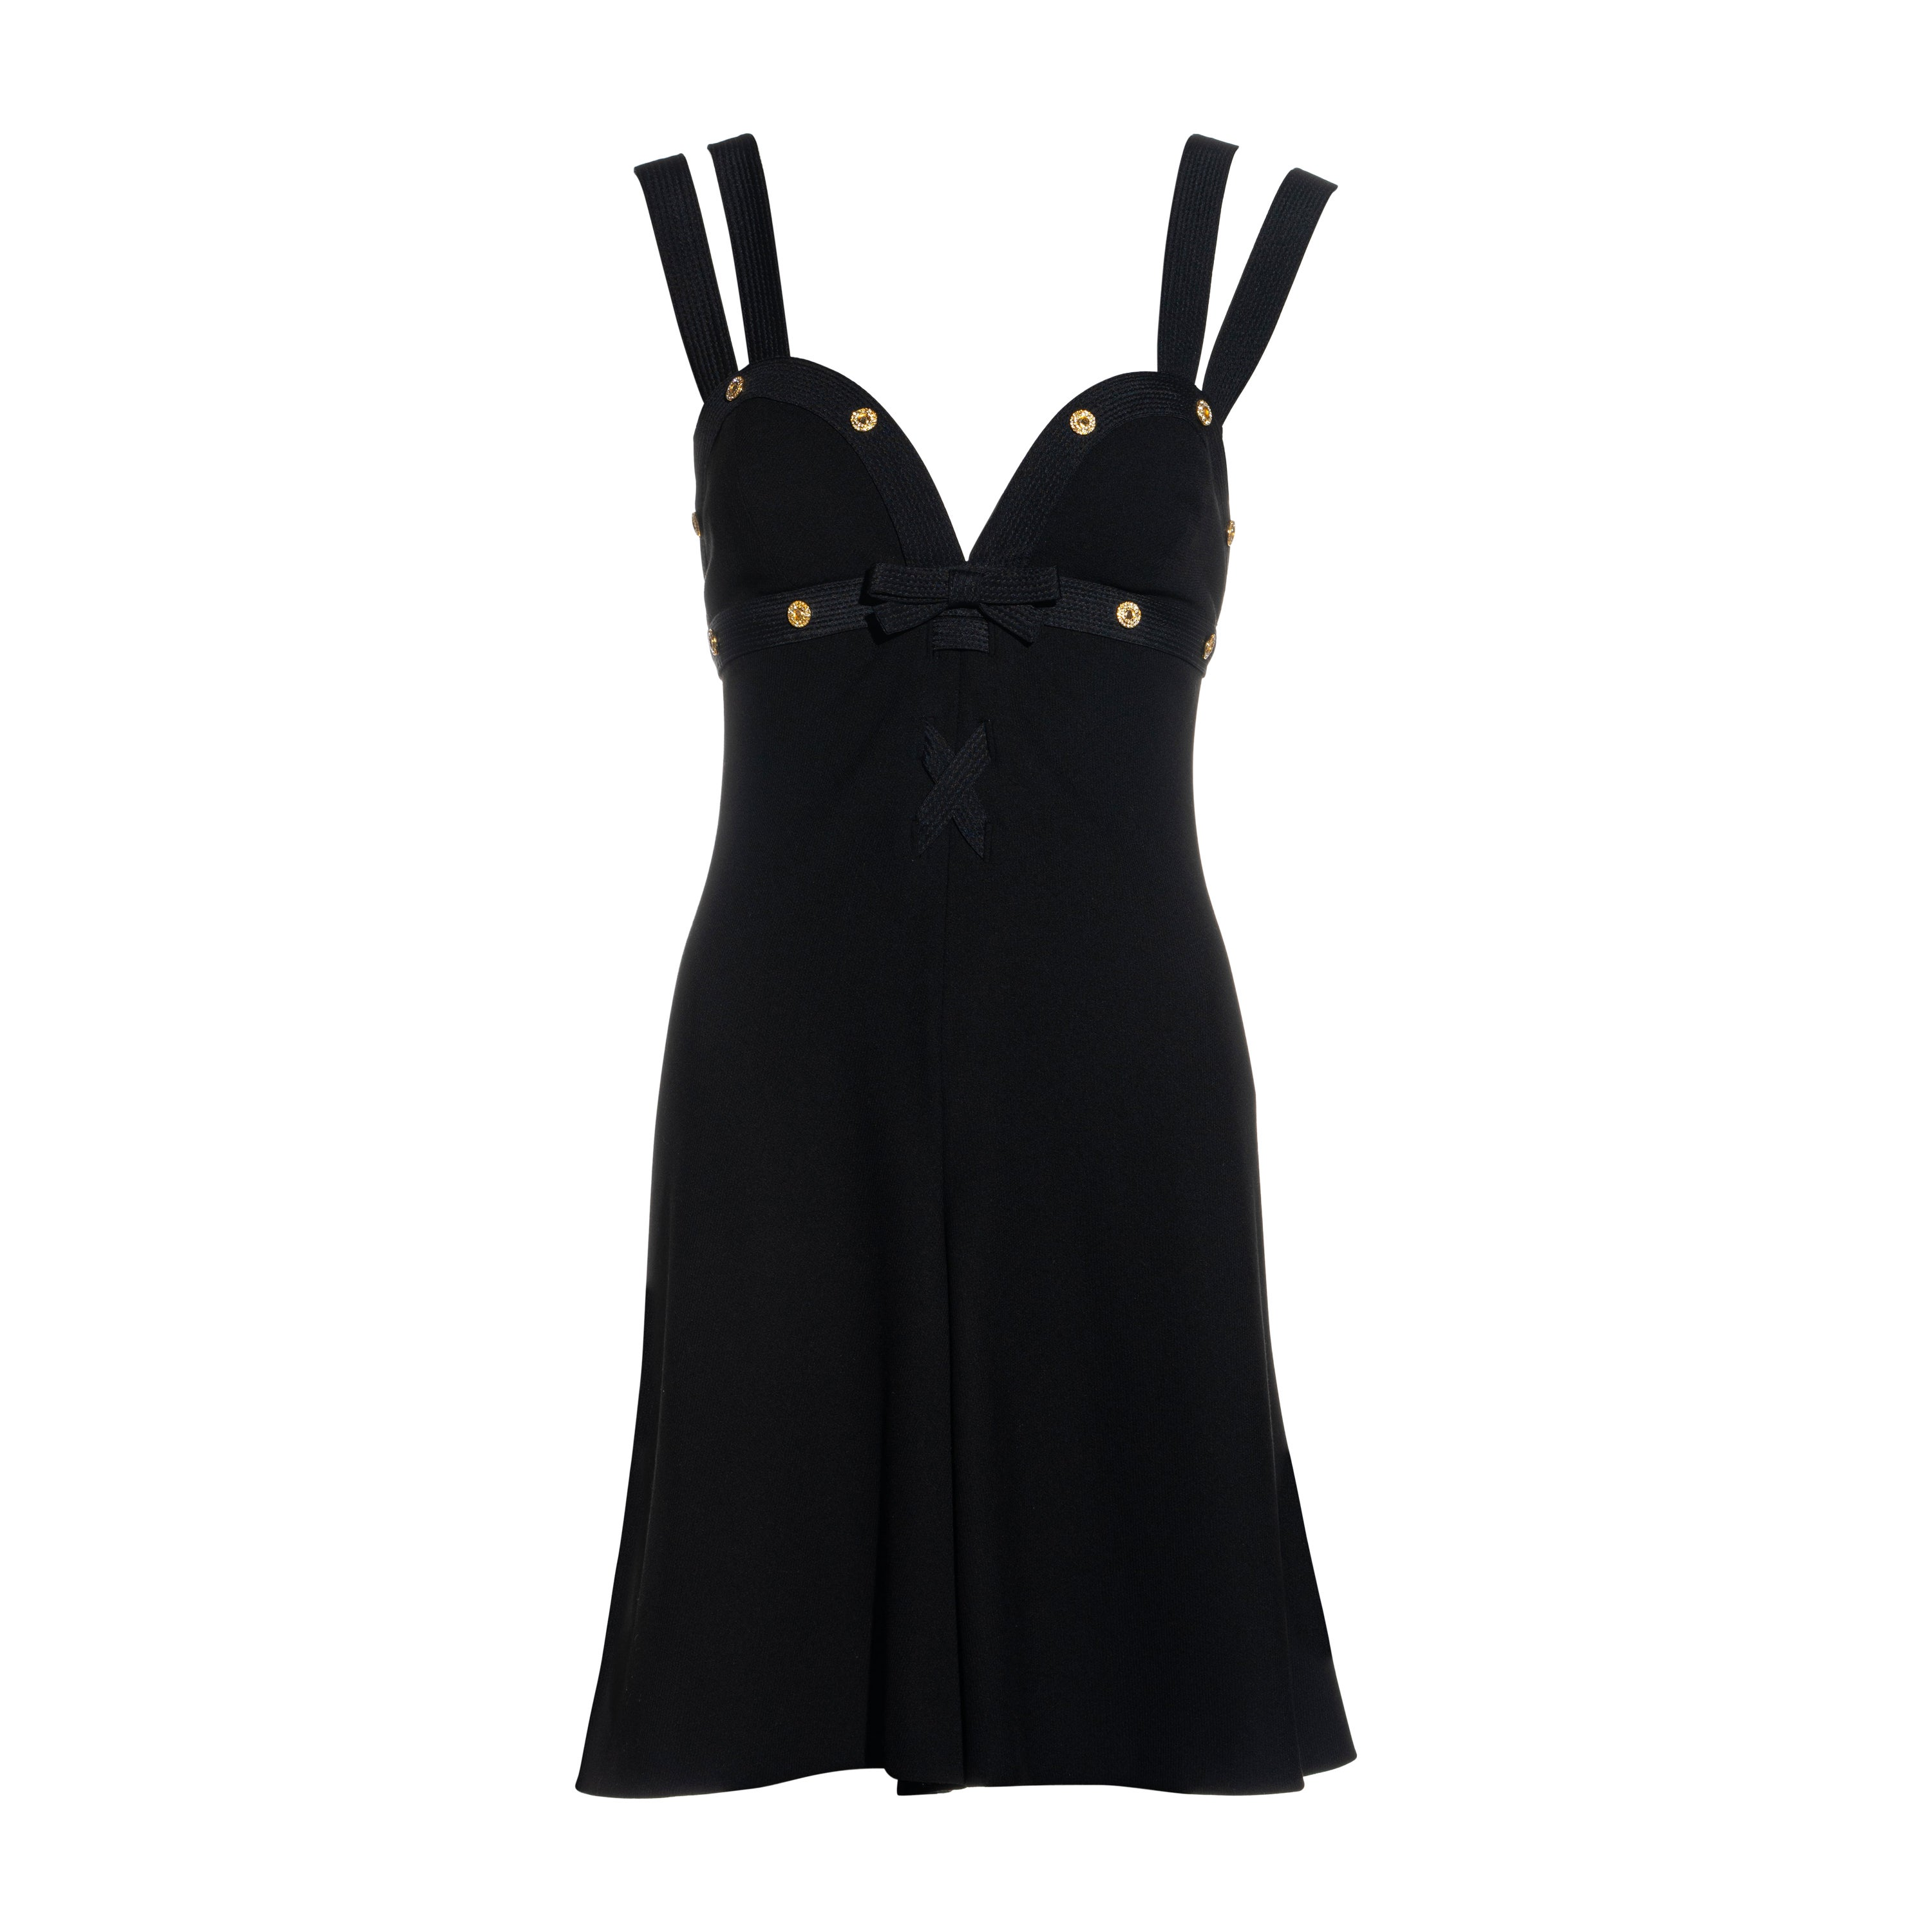 Gianni Versace black wool double strap playsuit with gold crystal studs, ss 1992